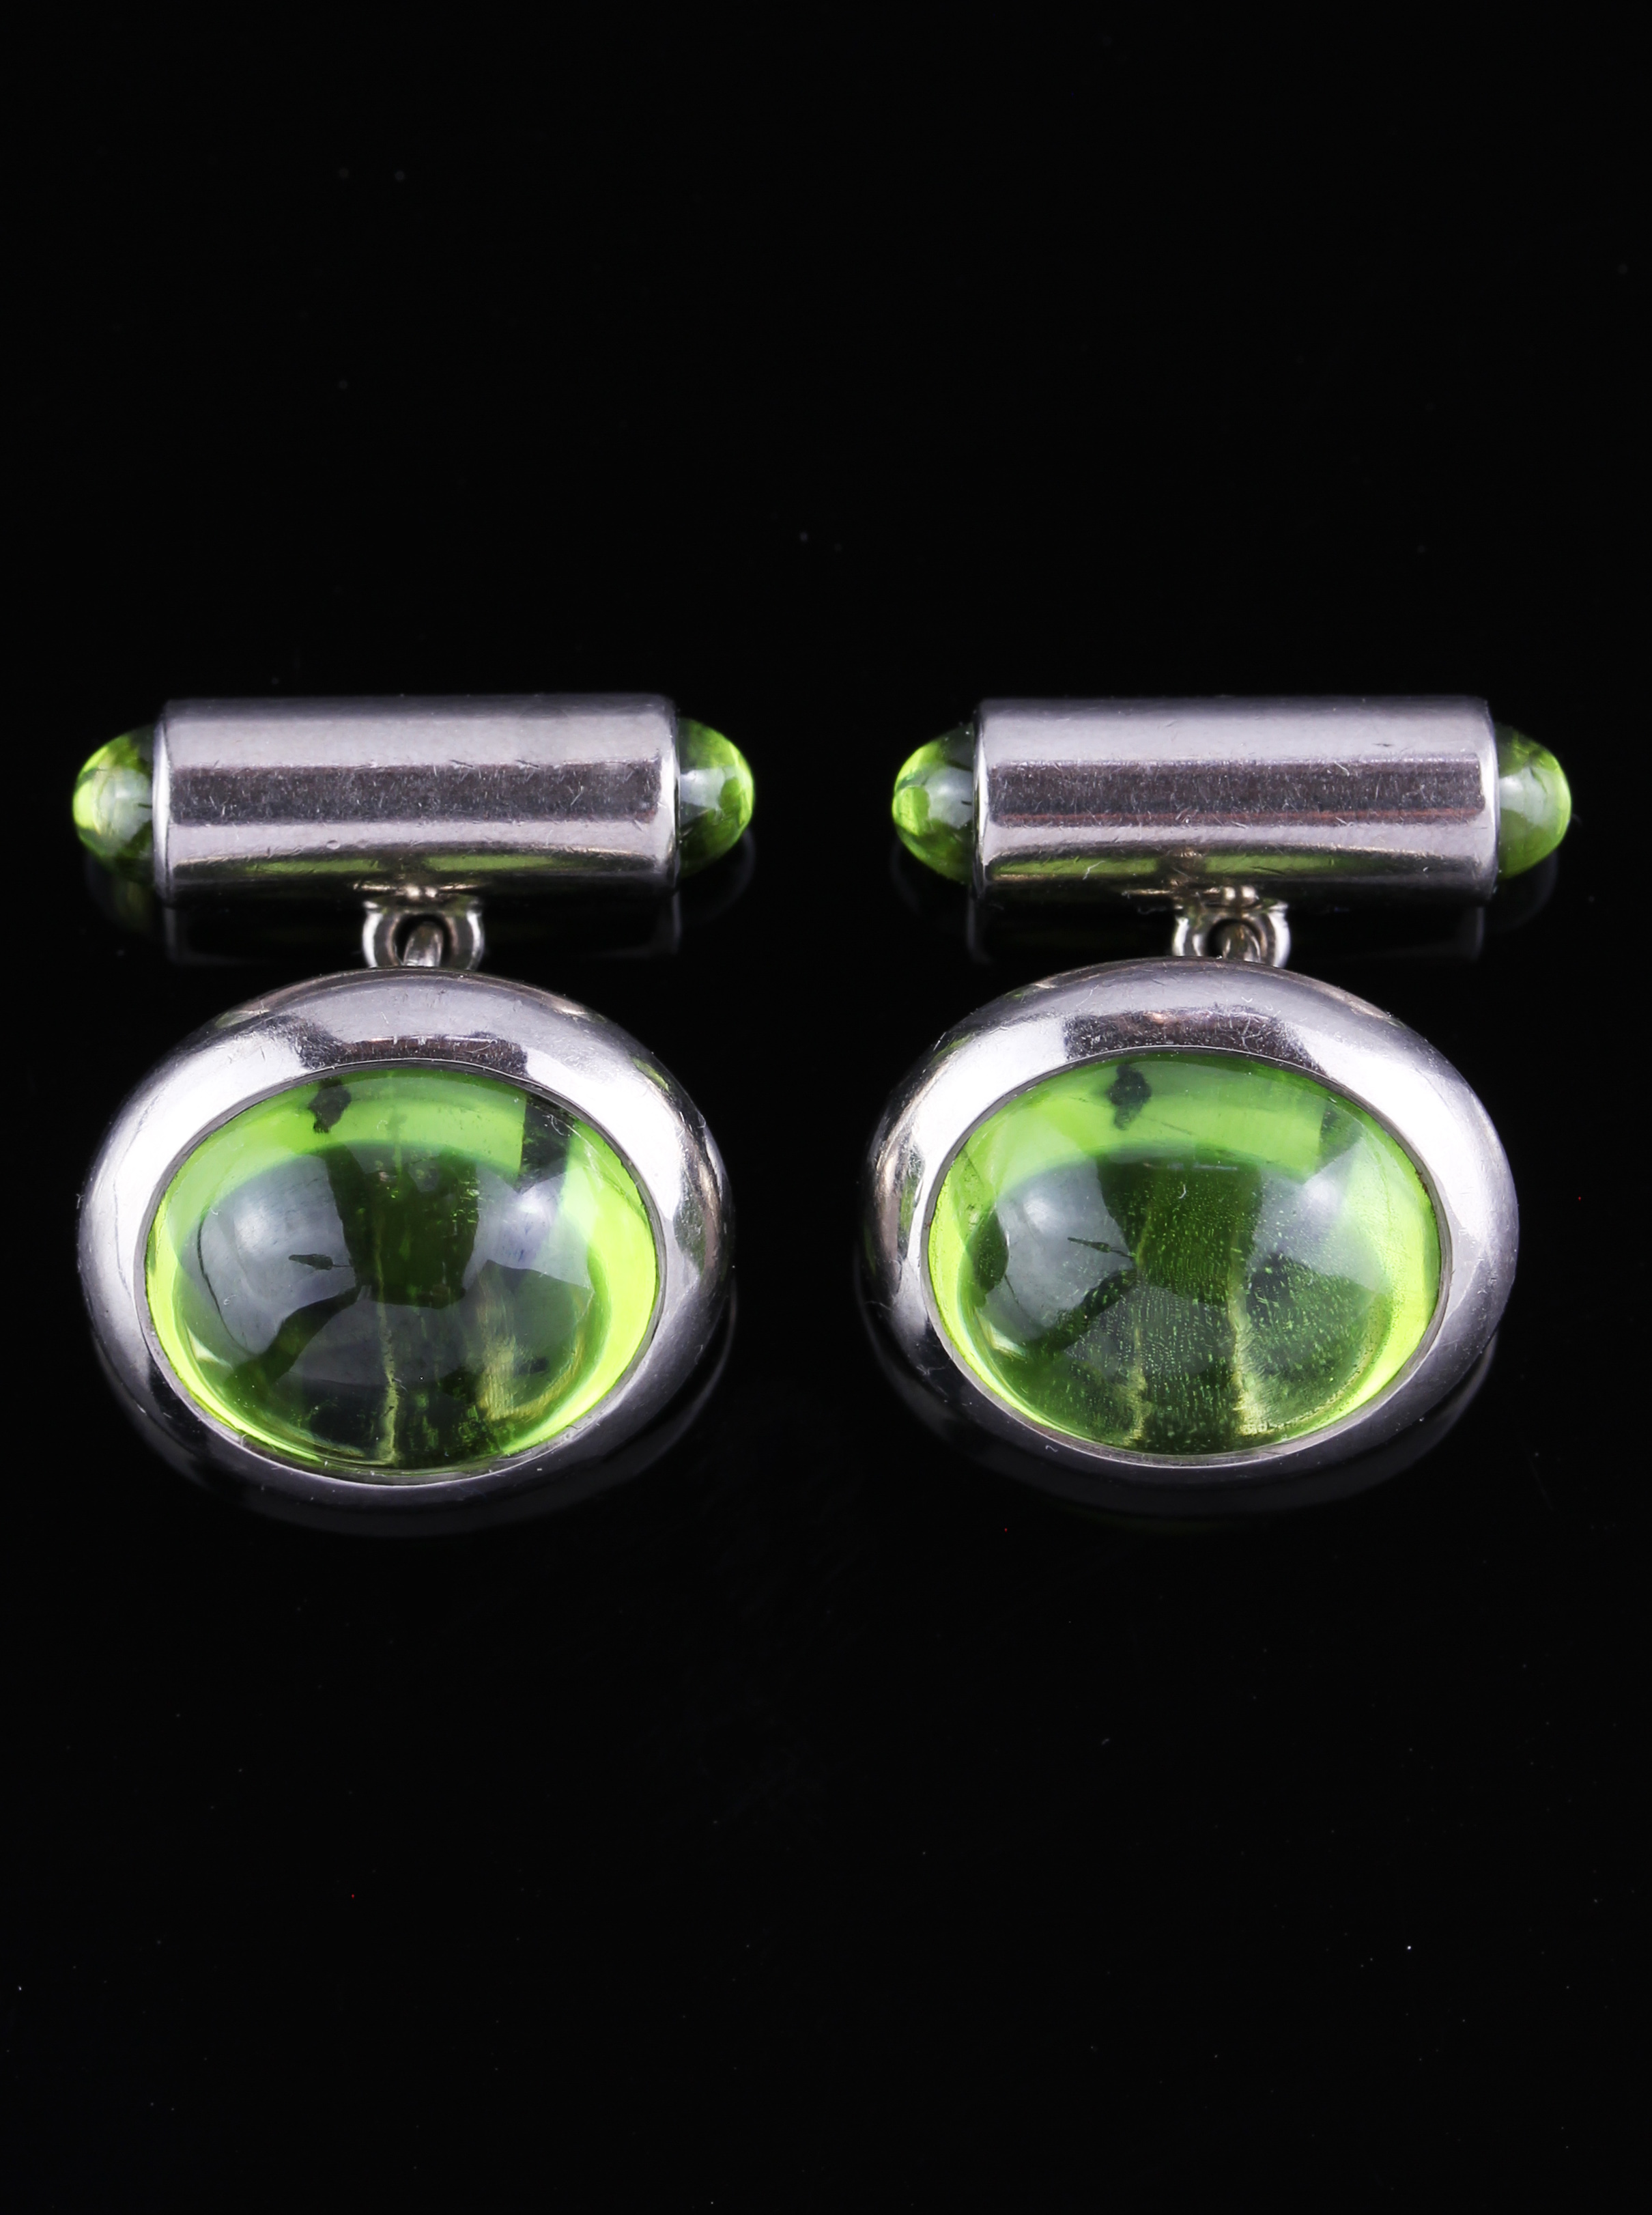 White gold cufflinks with Peridots made by HEMMERLE